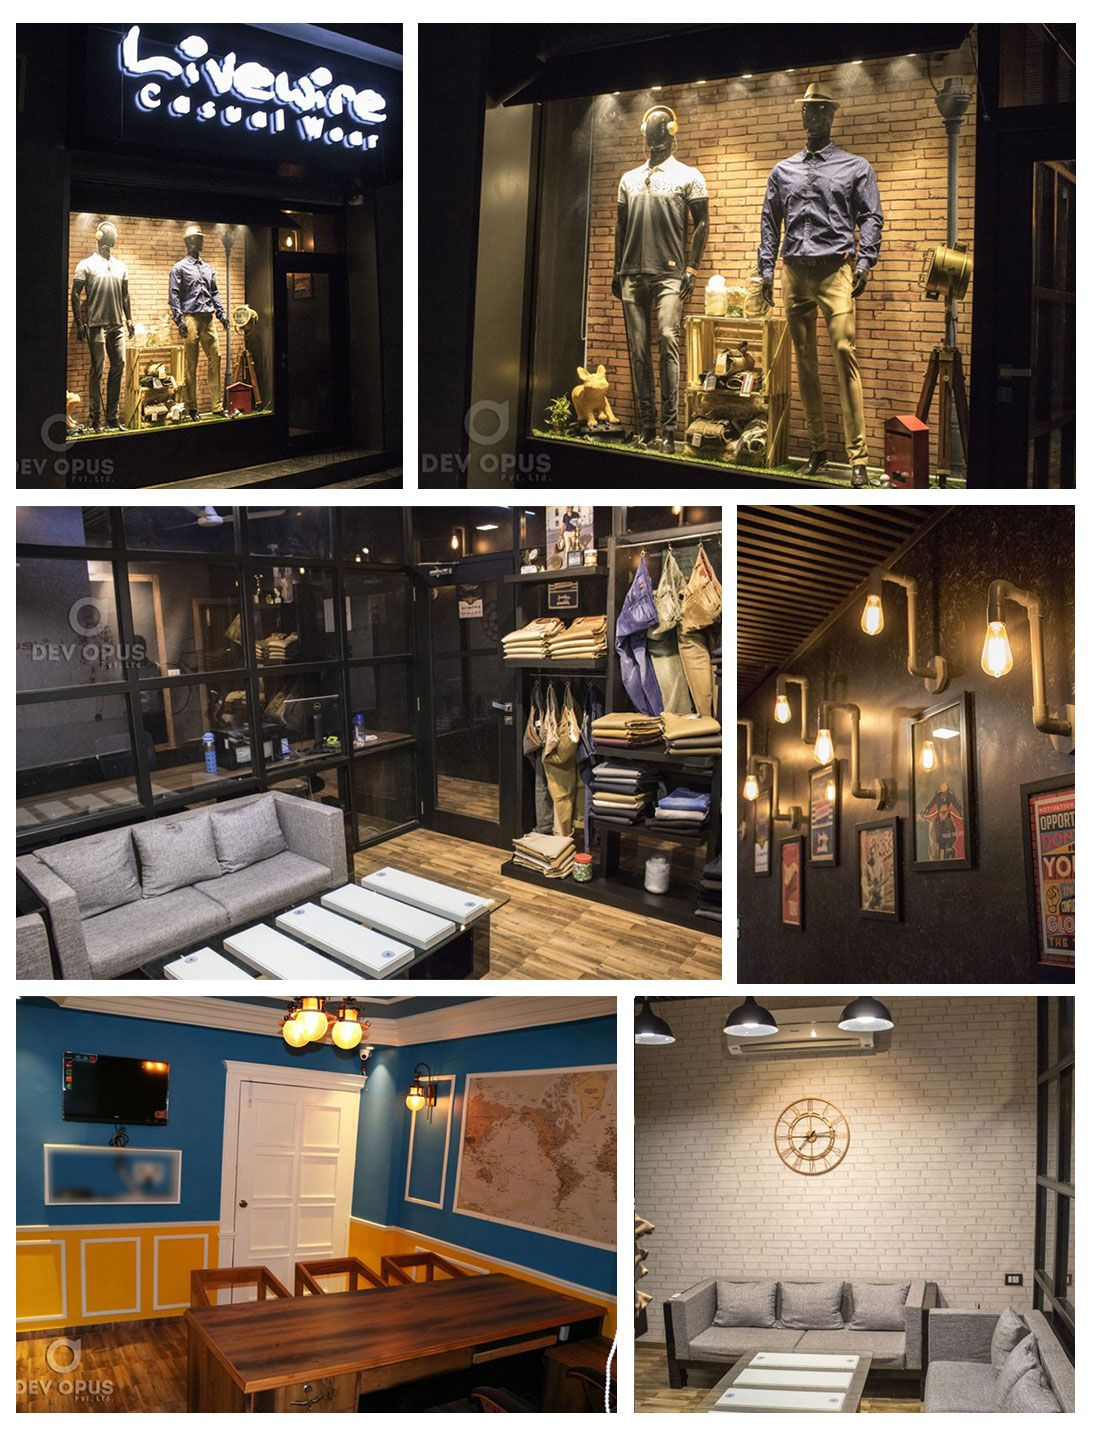 Interior design for corporate office of garment brand in india vintage and themed creative inspiration ideas also dev opus pvt ltd devopus on pinterest rh